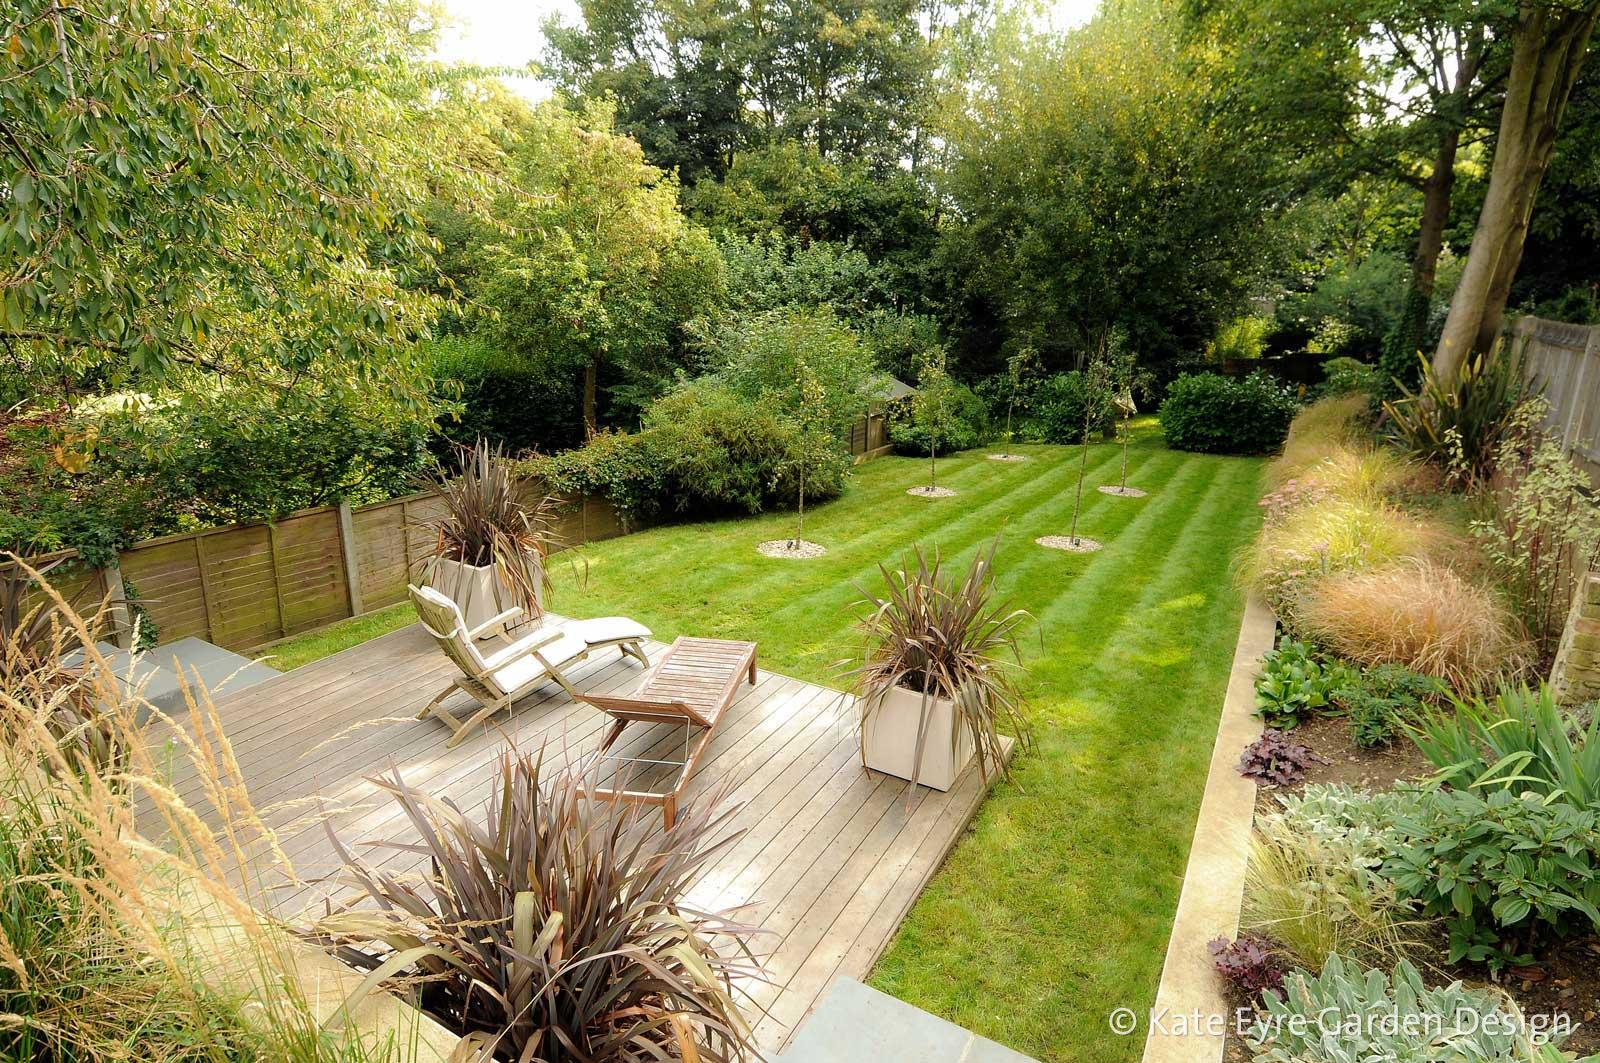 Garden design in crystal palace south east london for Garden design east london